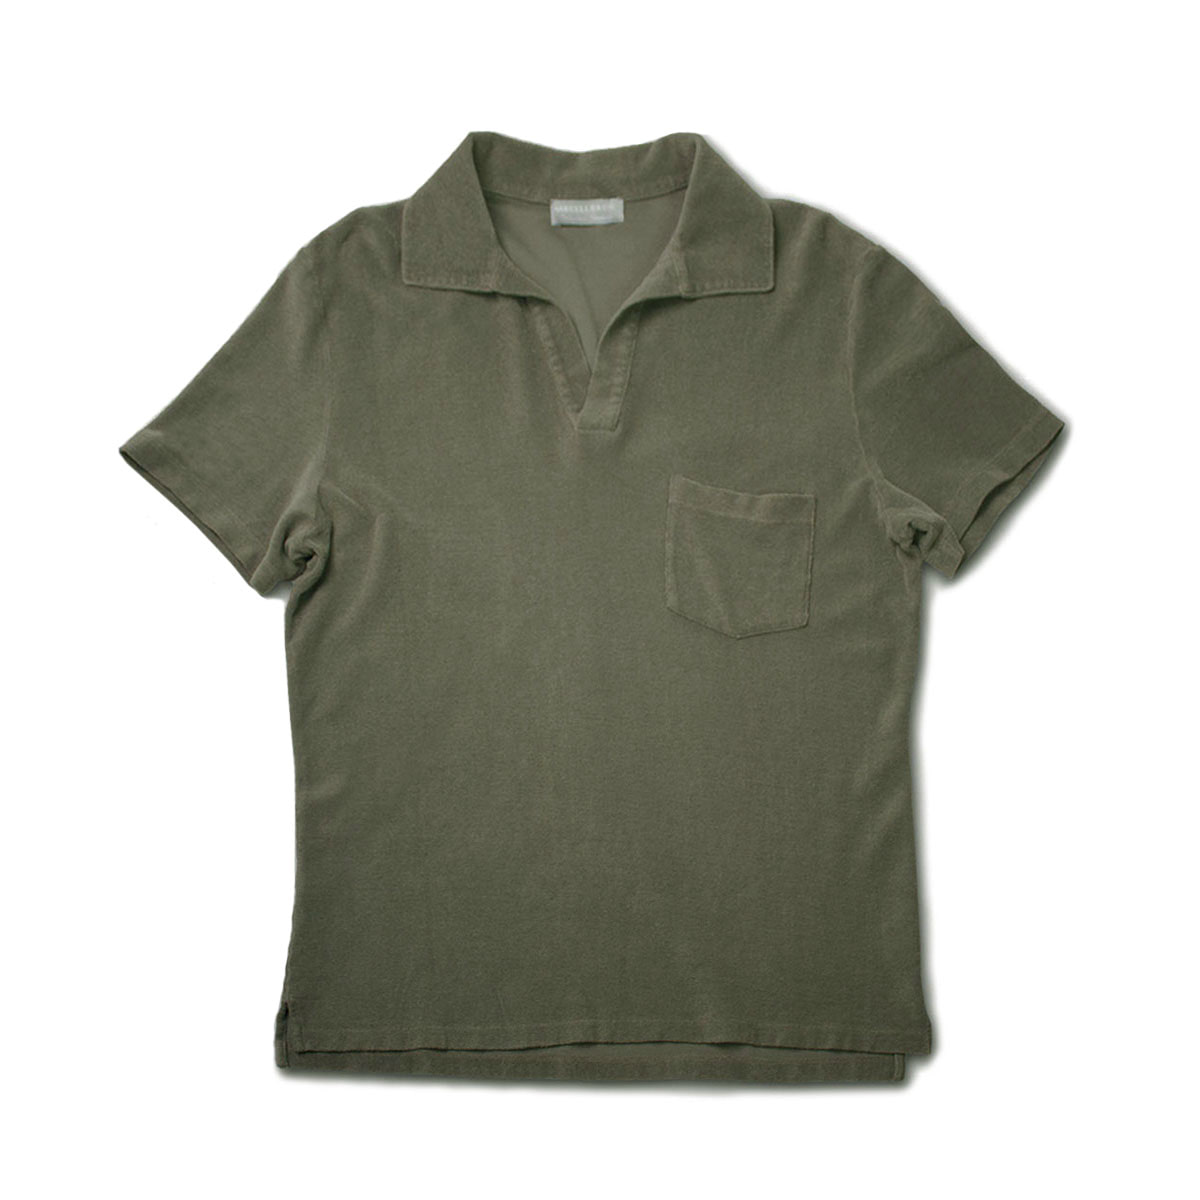 [GIRELLI BRUNI] OPEN COLLAR POLO SHIRT 'LAGON'